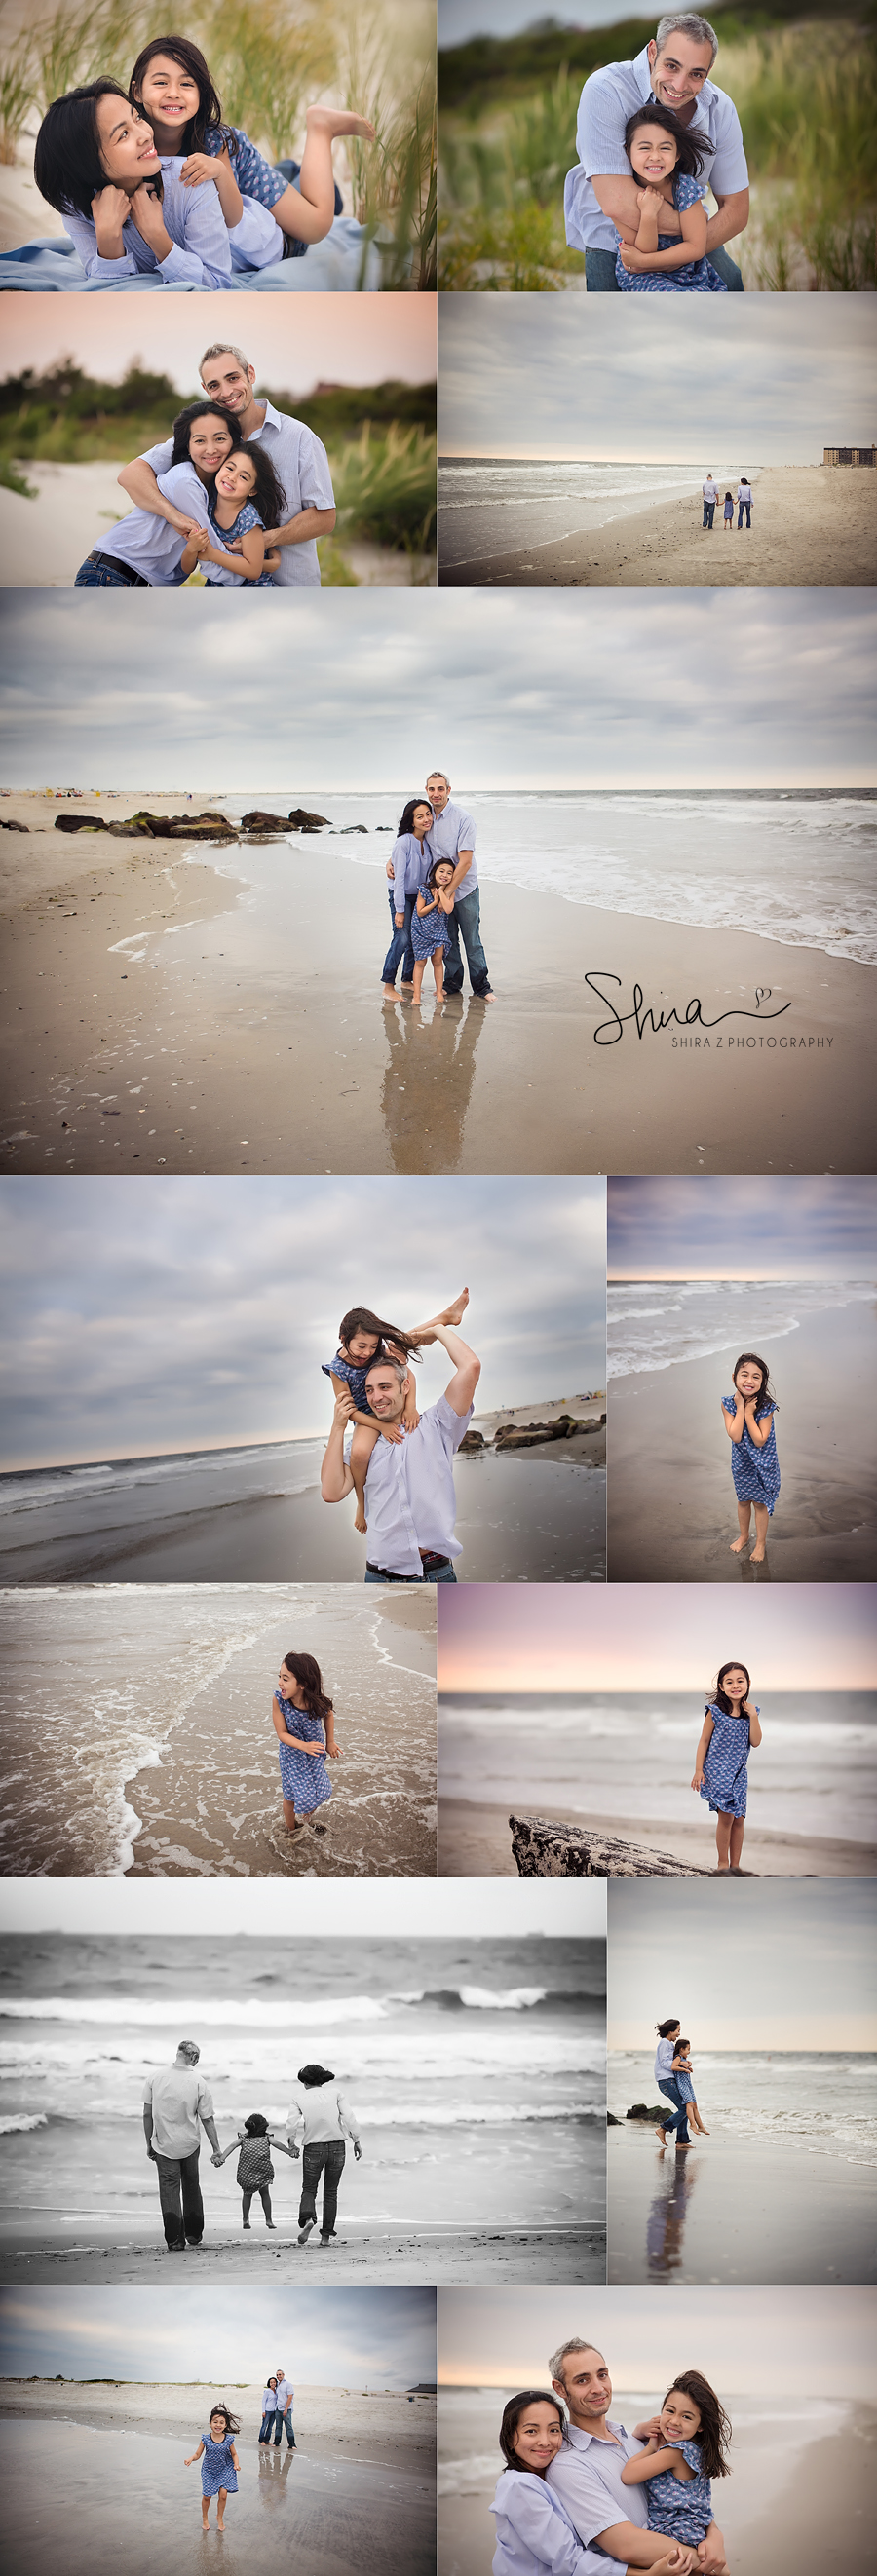 Collage of Long Island Family Long Beach Portraits